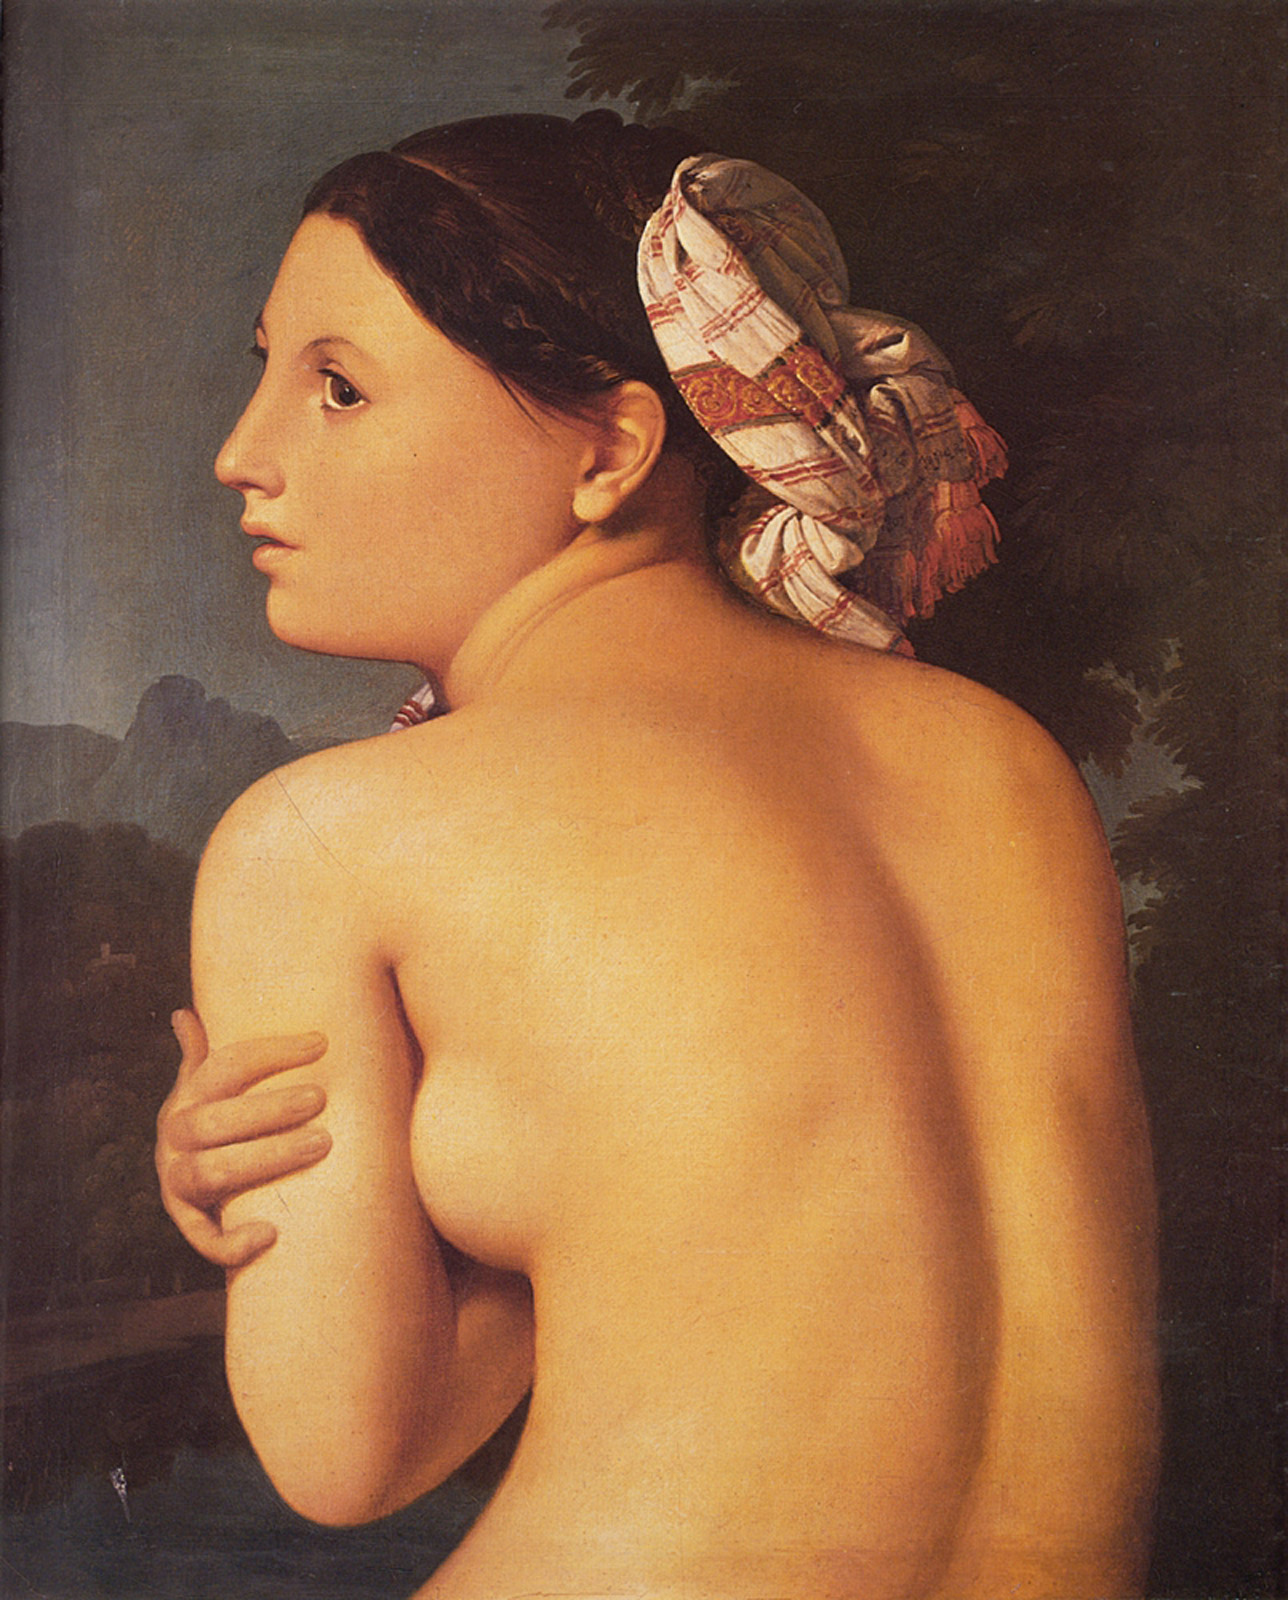 ingres - Half-figure of a Bather. 1807. Oil on canvas. Musee Bonnat, Bayonne, France.jpg